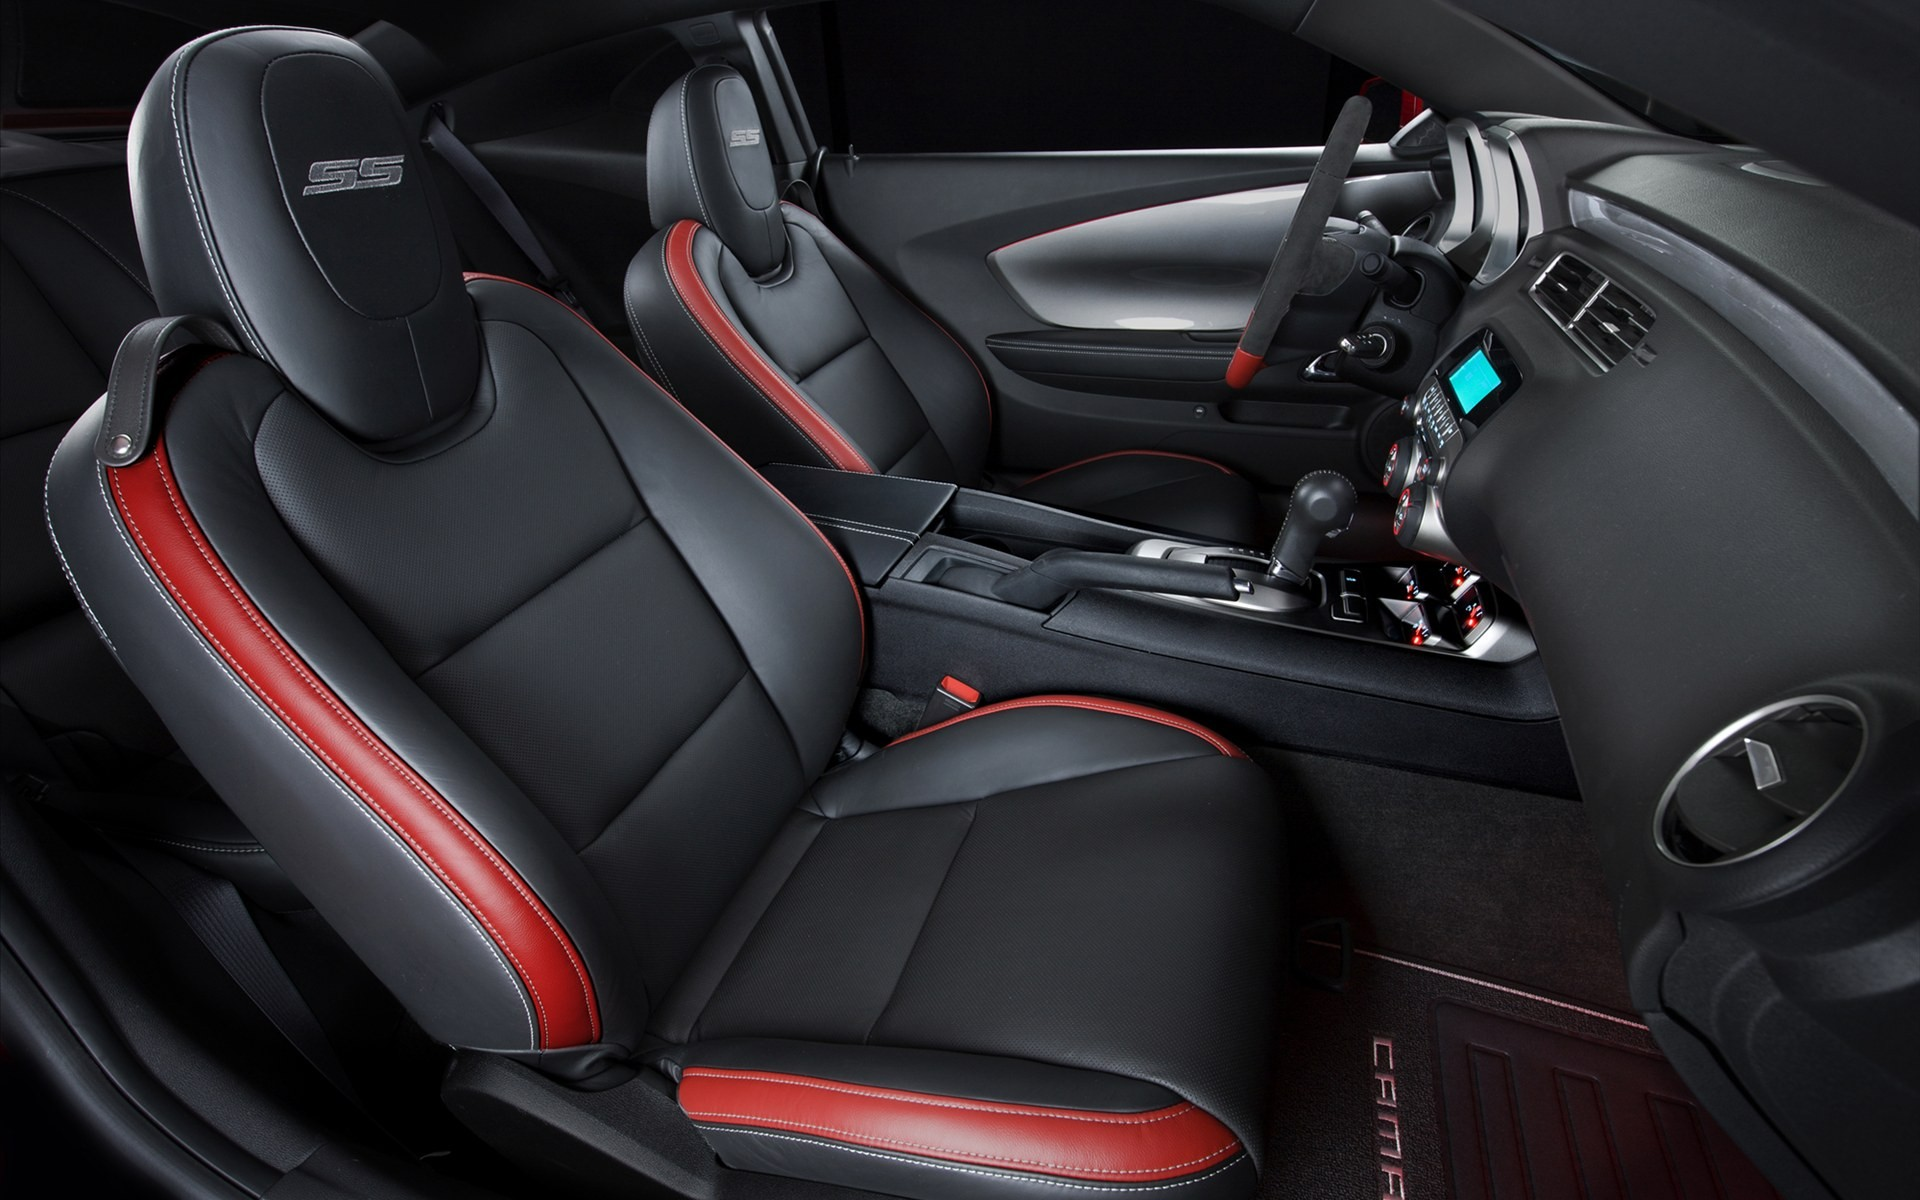 2010 Chevrolet Camaro Red Flash Concept Interior Wallpaper ...